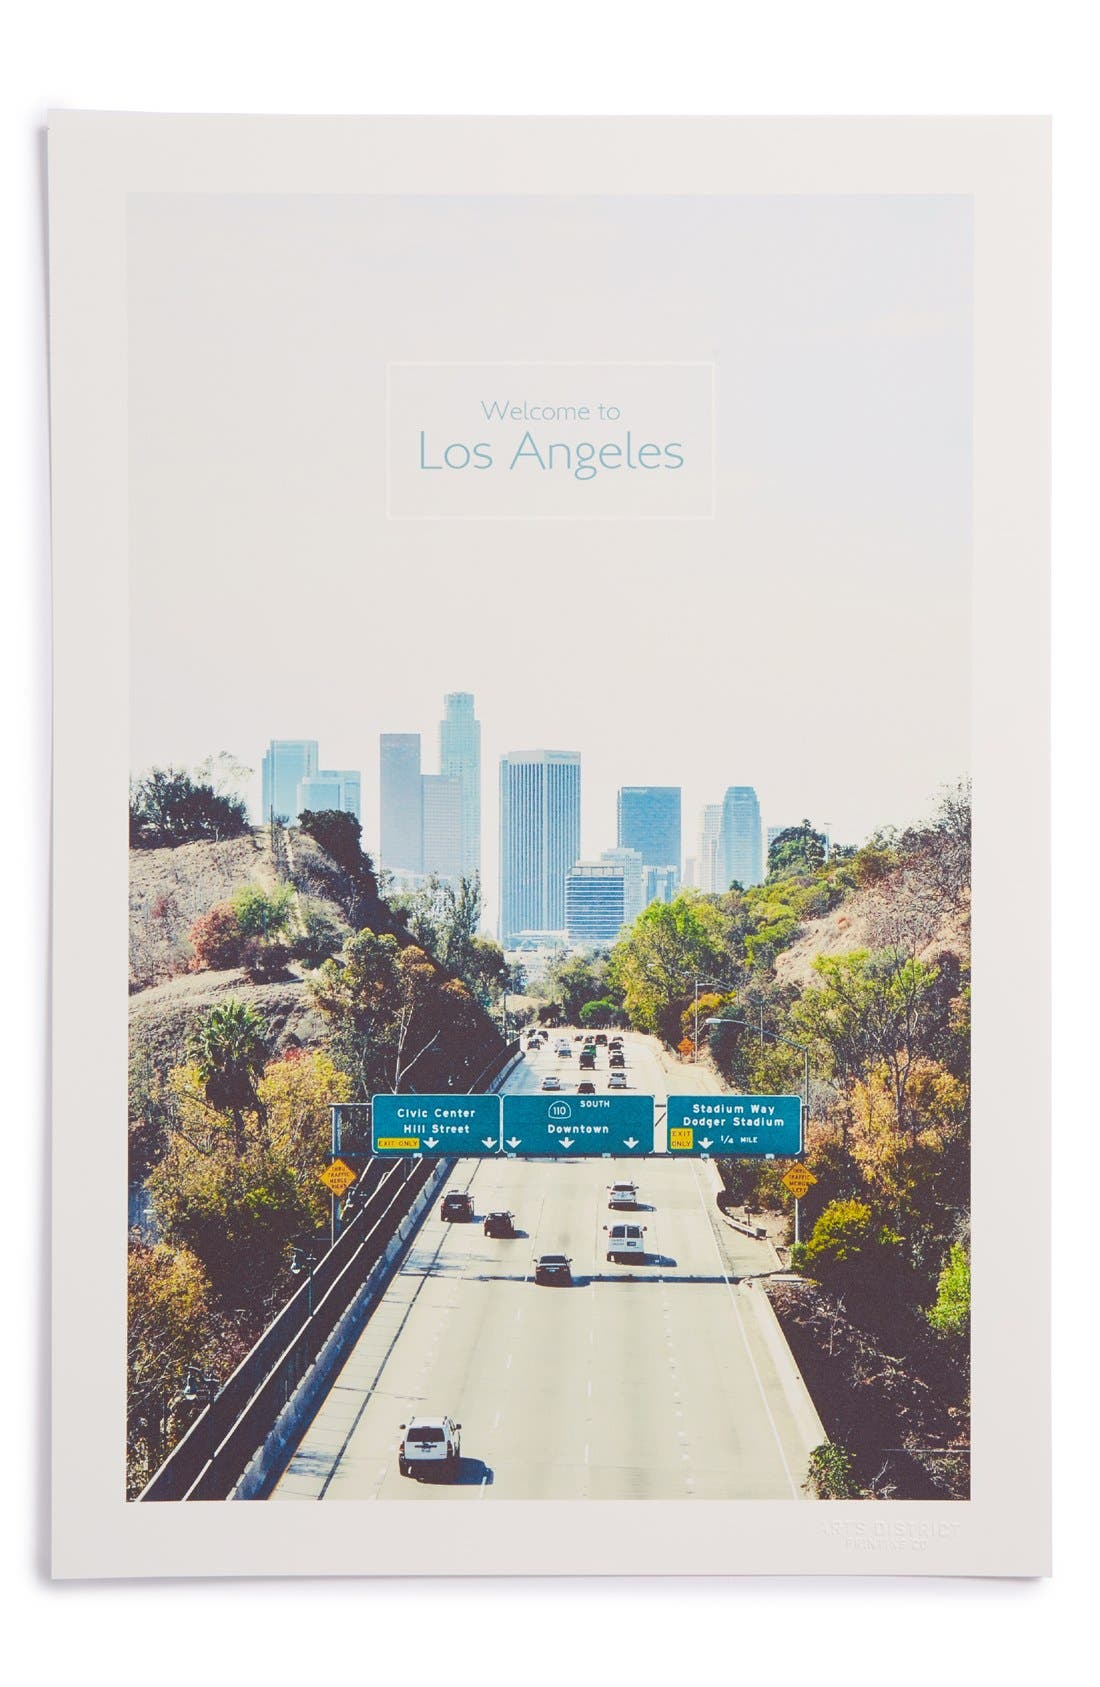 Alternate Image 1 Selected - Arts District Printing Co. 'Welcome to Los Angeles' Print